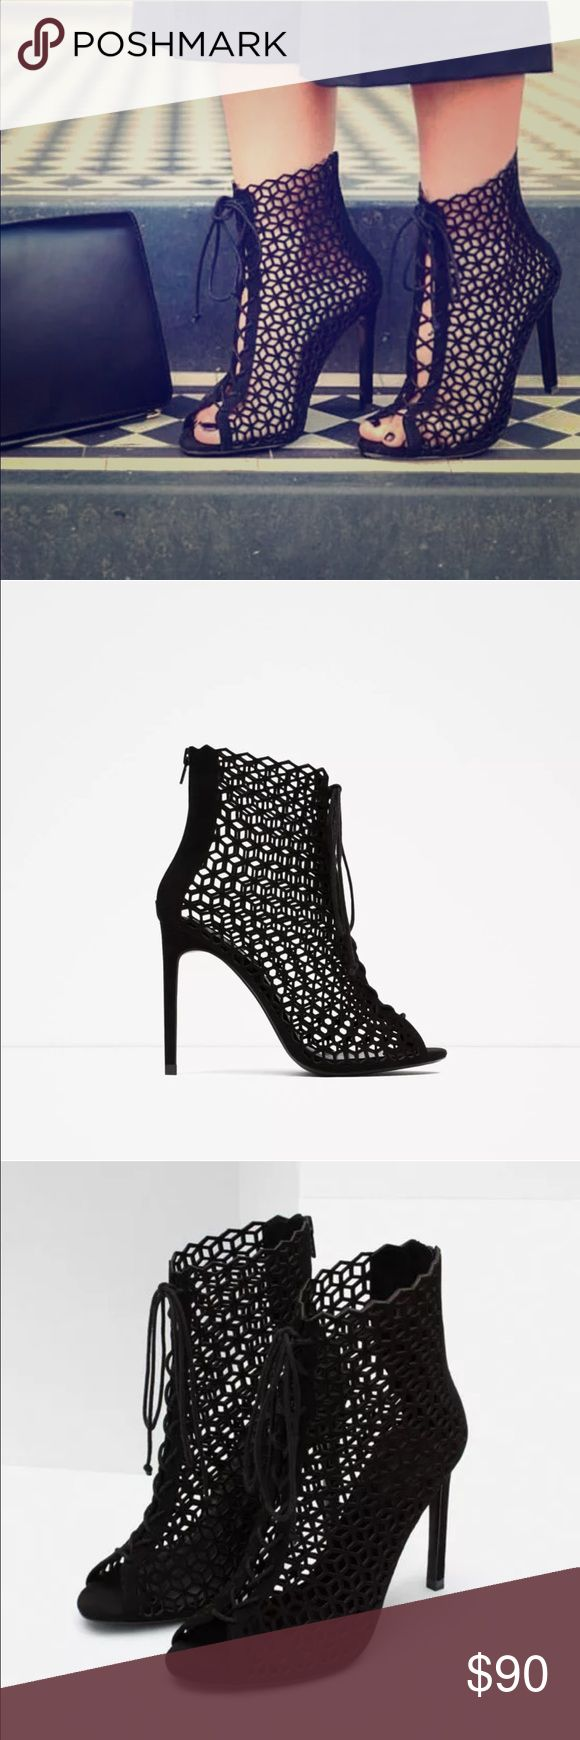 SALE!! ZARA CUT WORK HIGH-HEELED SANDAL SIZE 6 LEATHER HIGH HEEL SANDALS WITH LACES Black high heel leather sandals. Perforated details and laces on the instep. Back zip closure. Heel height 4 inches Zara Shoes Ankle Boots & Booties